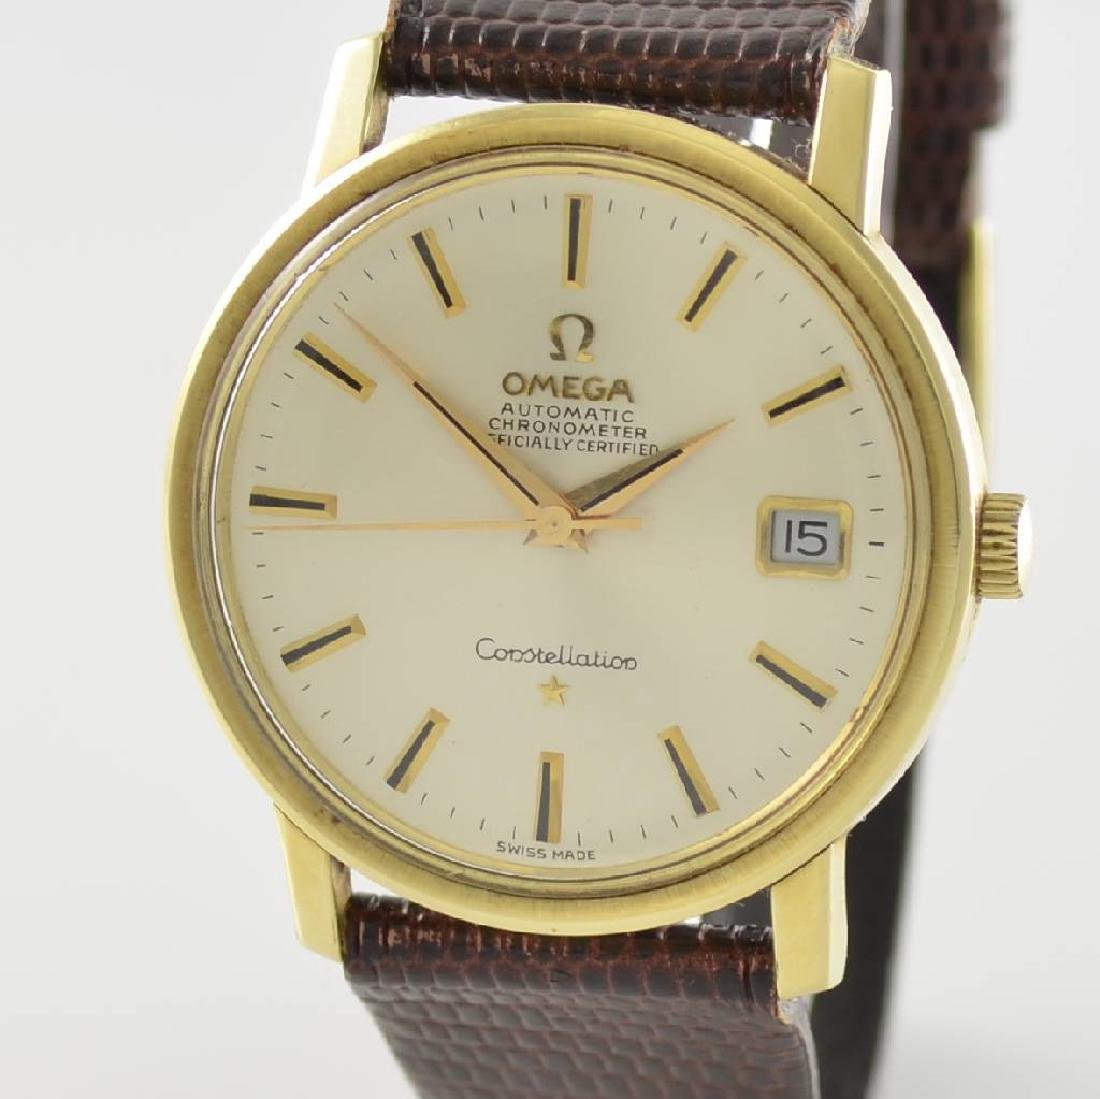 OMEGA Constellation gents wristwatch - 4